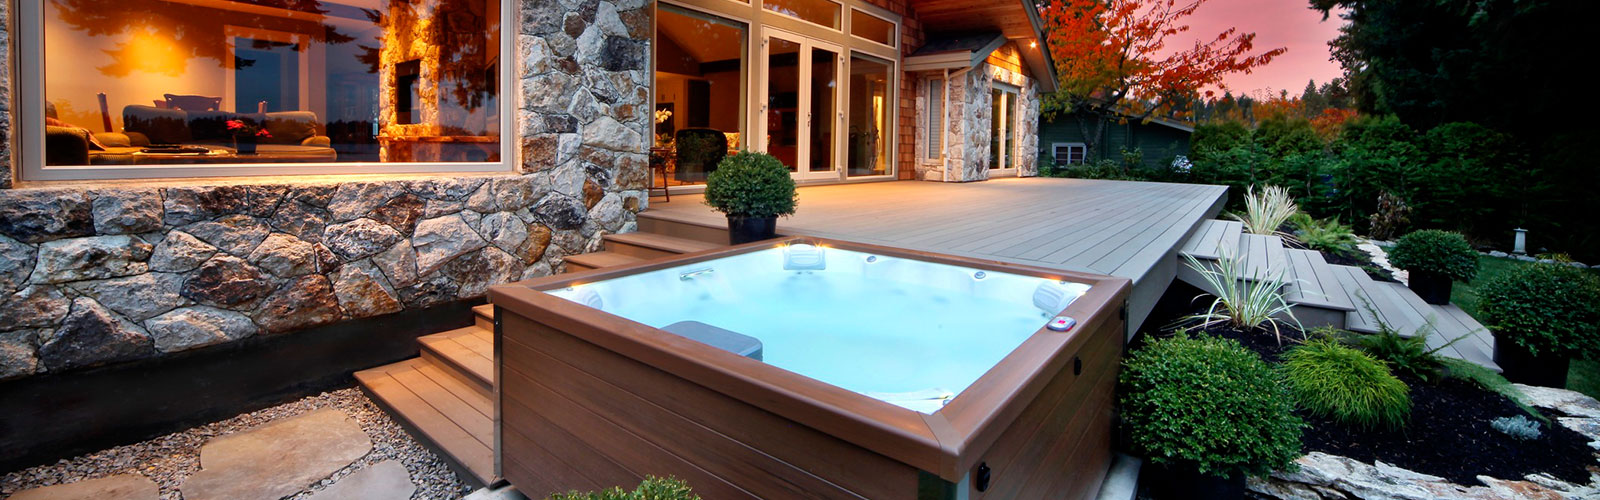 Spas and Hot Tubs Dealers in West Michigan - ZagersPoolSpa.com